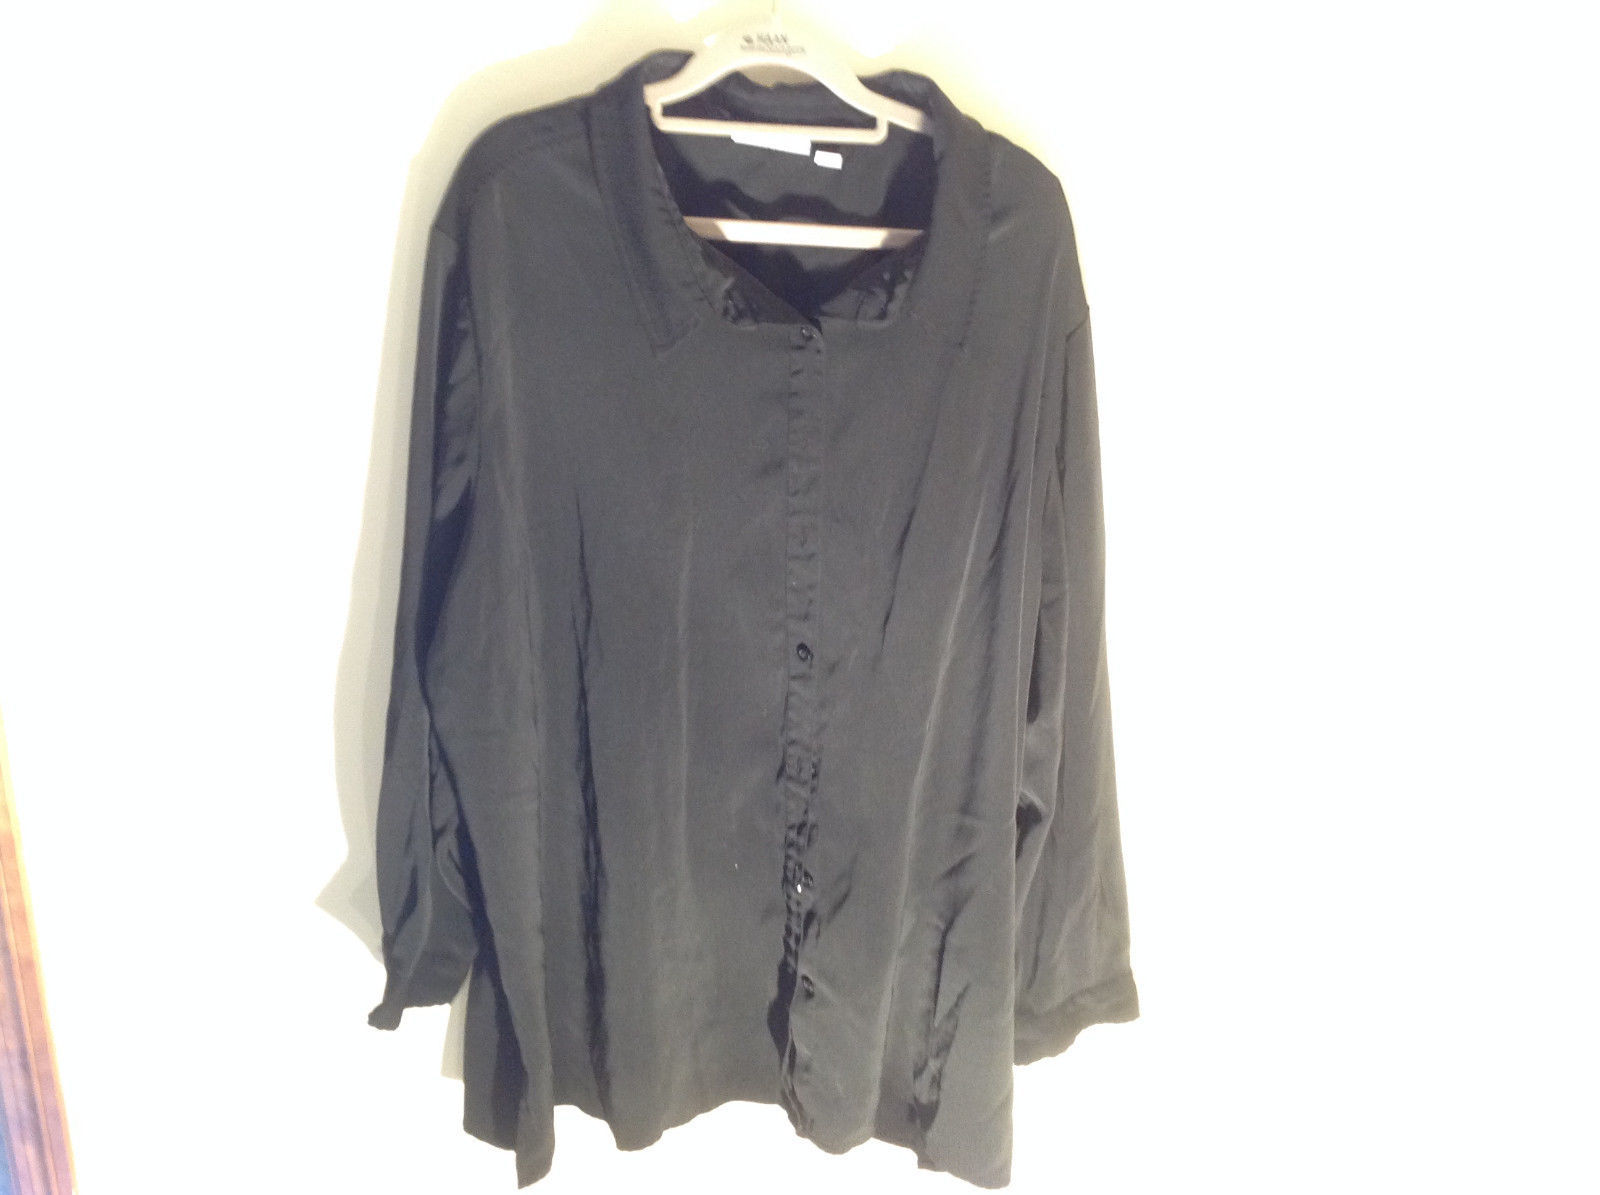 Lovely Susan Graver Black Jacket Shirt Button Up Long Sleeve Collared Size 3X